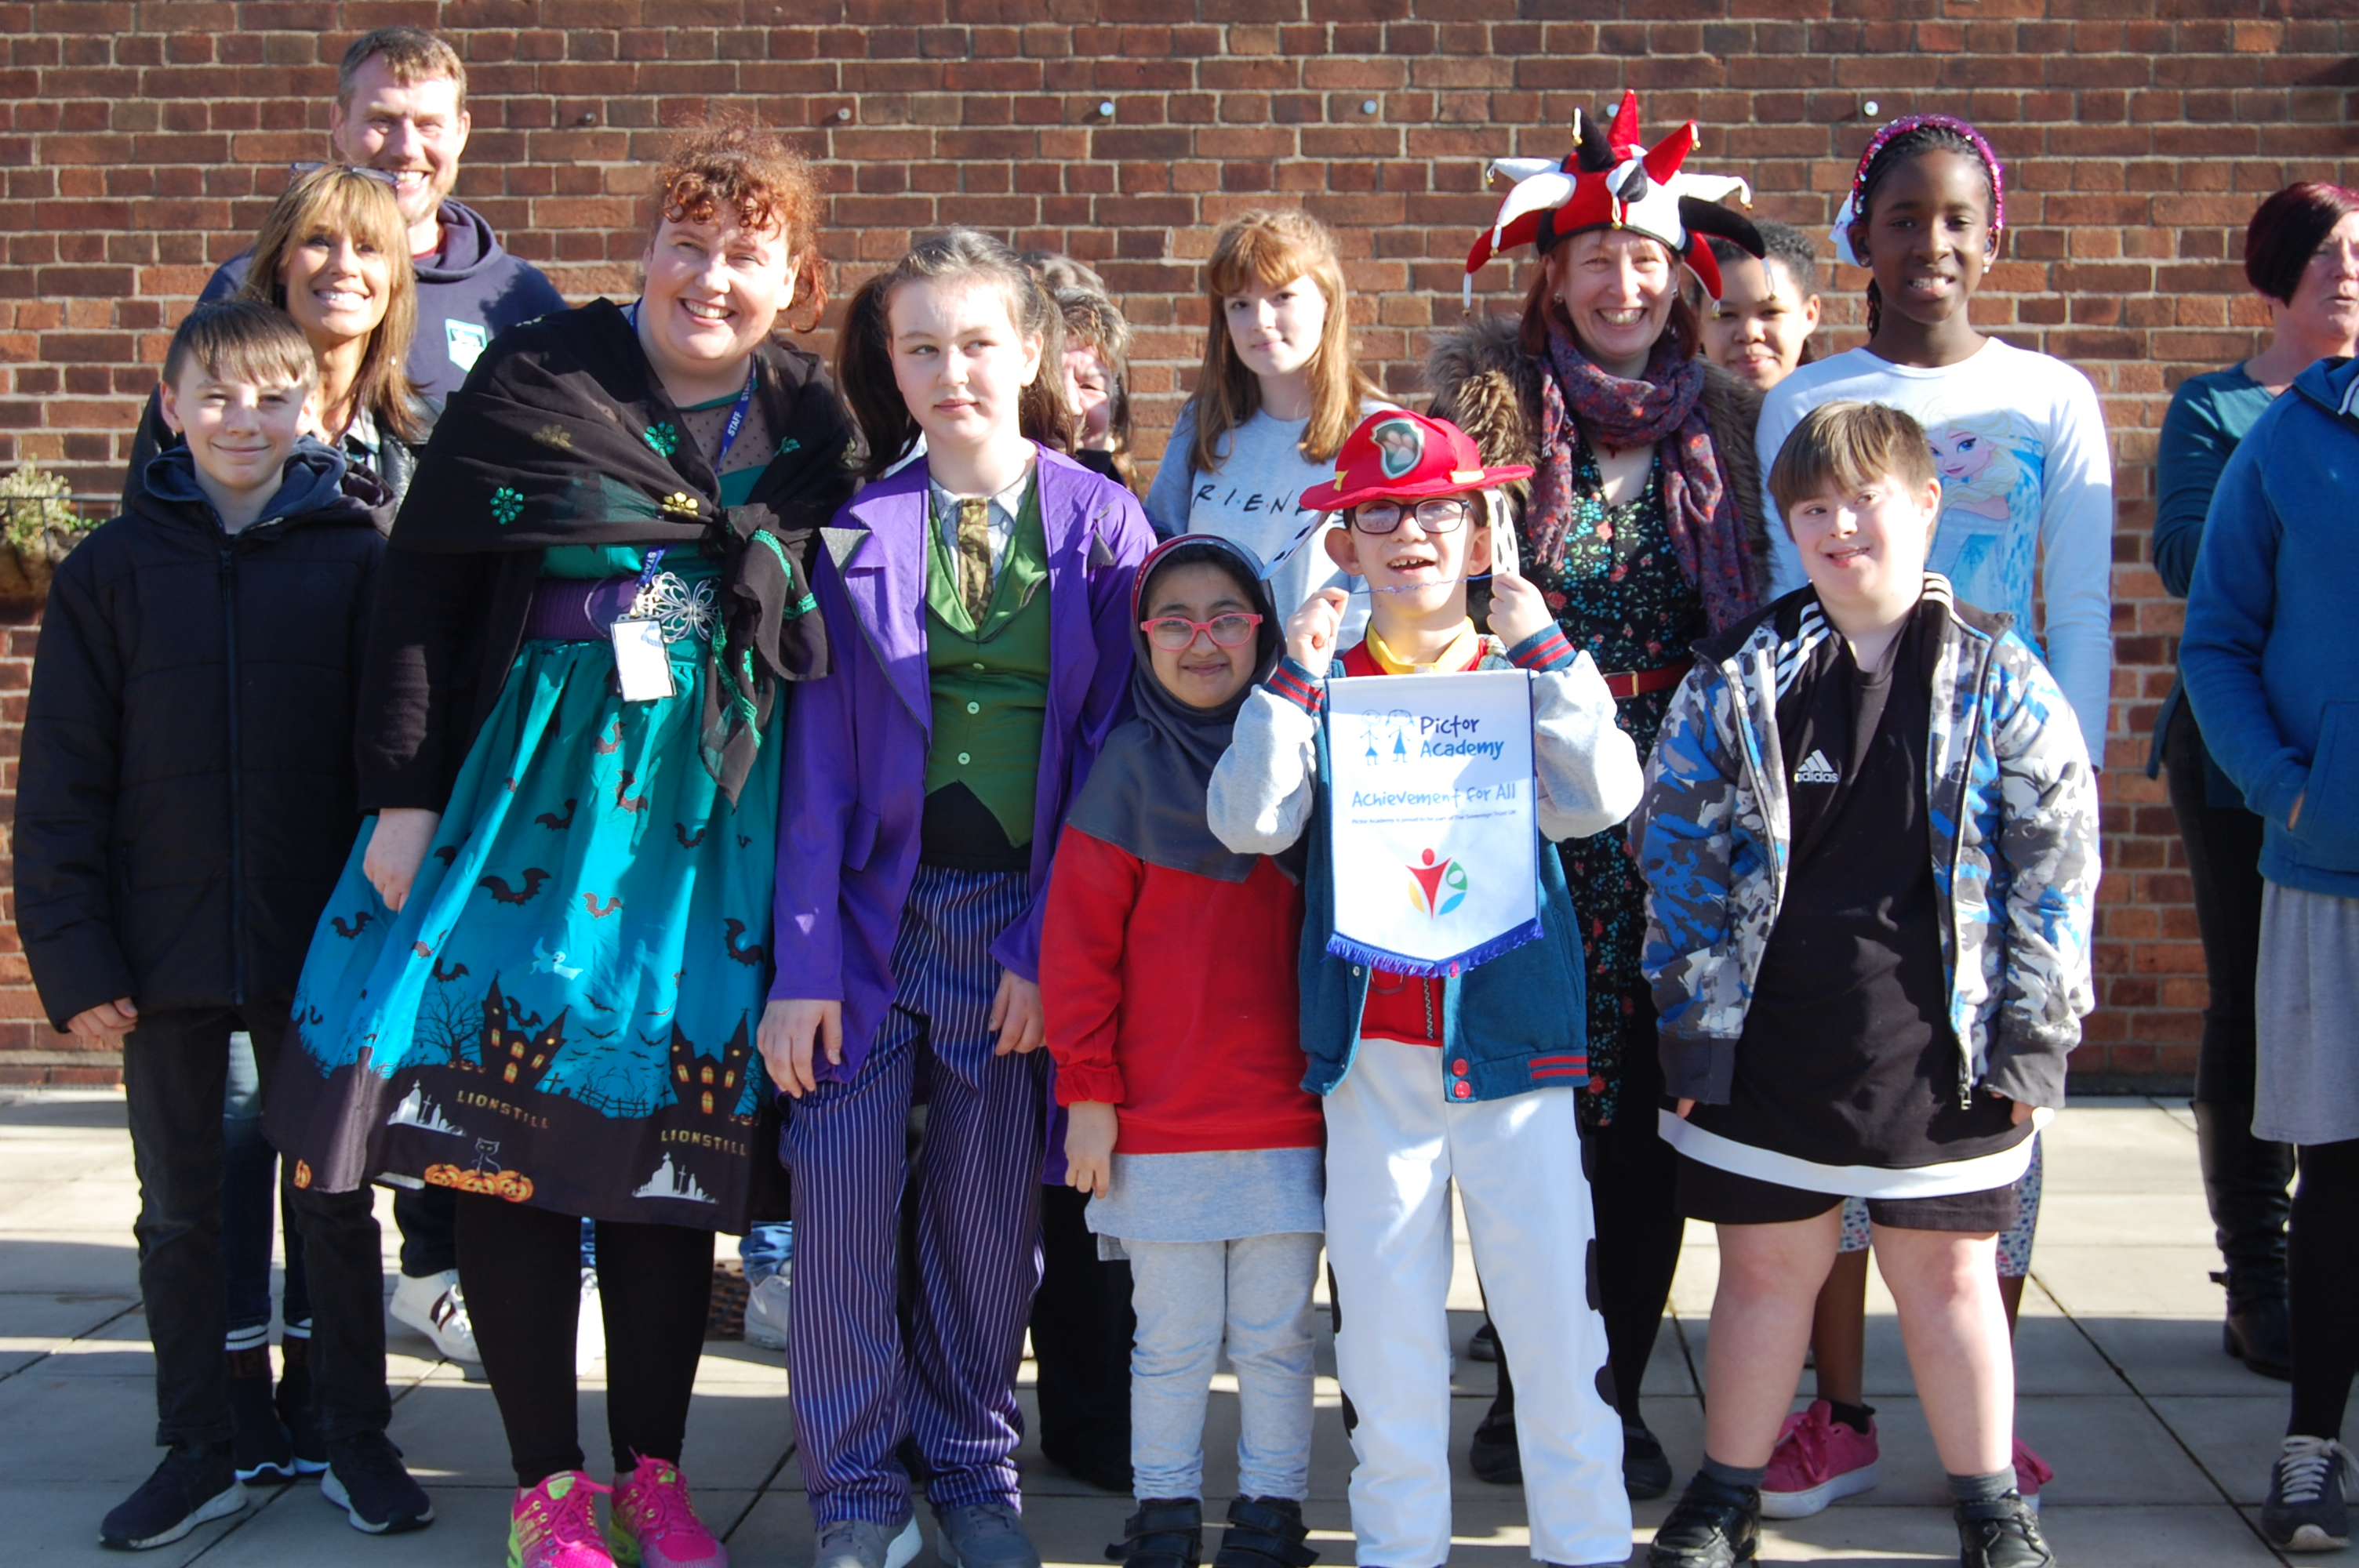 Pupils from Pictor Academy were happy to join the walk